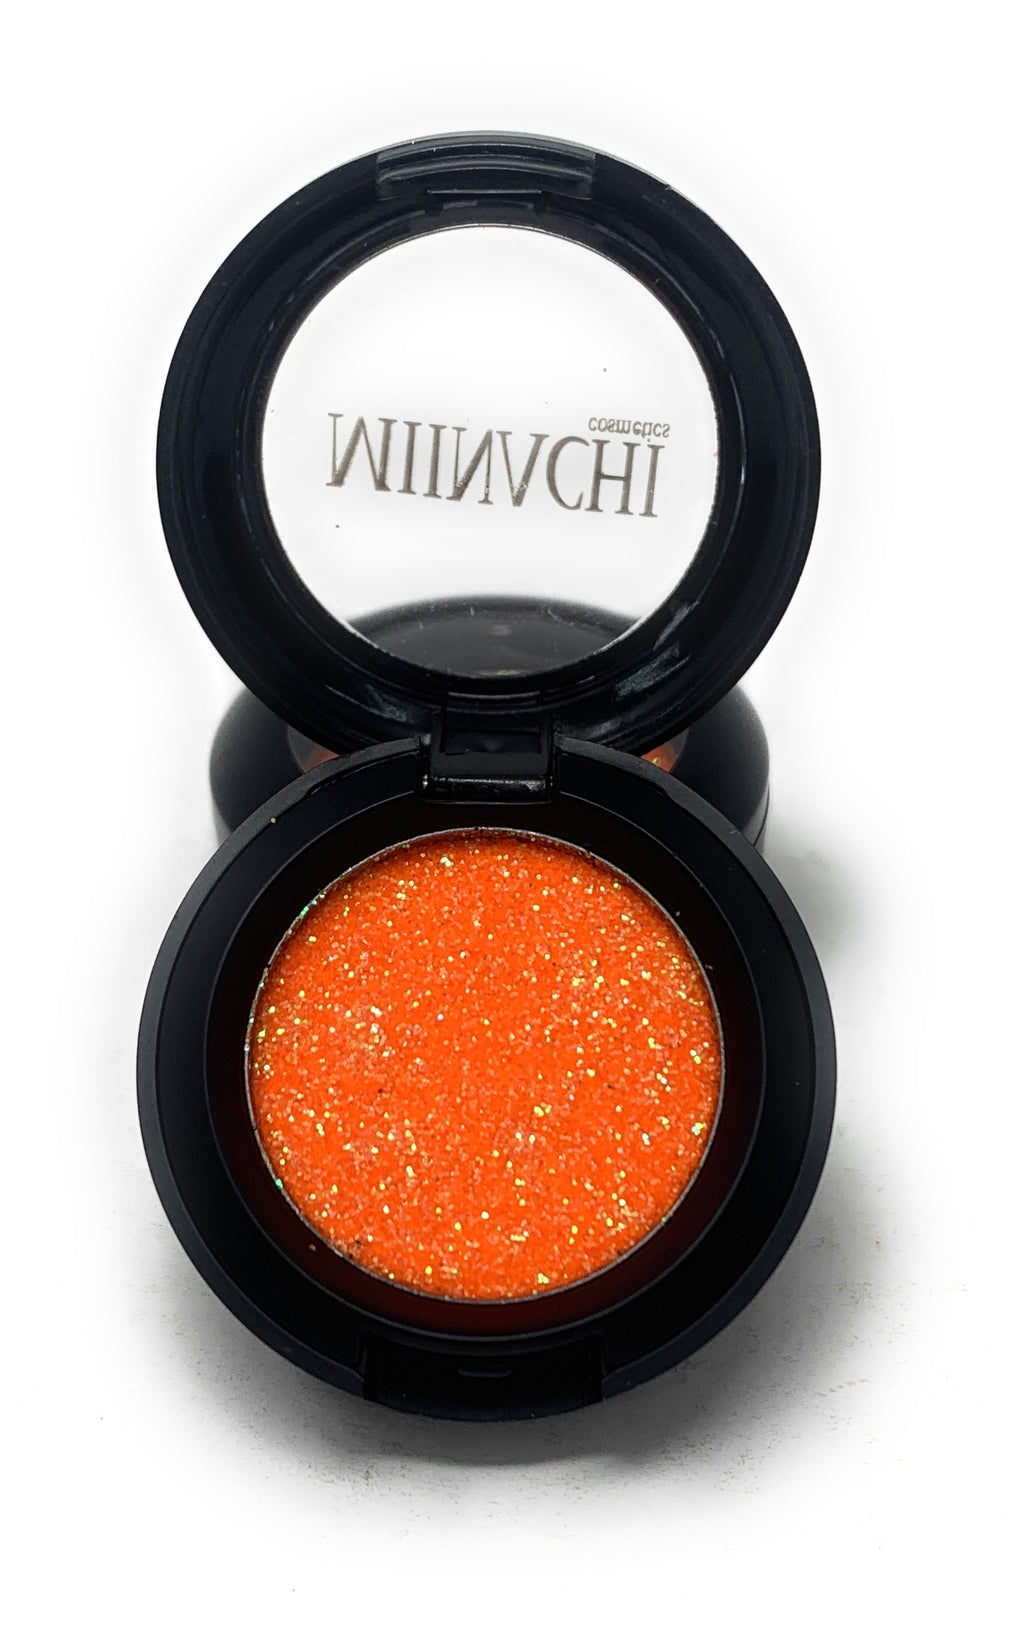 Single Pressed Glitter in the shade Peachy, No Glue Needed, In Compact, Pigmented, No Fall Out, Glitter, Cosmetic Grade Glitter, Peach